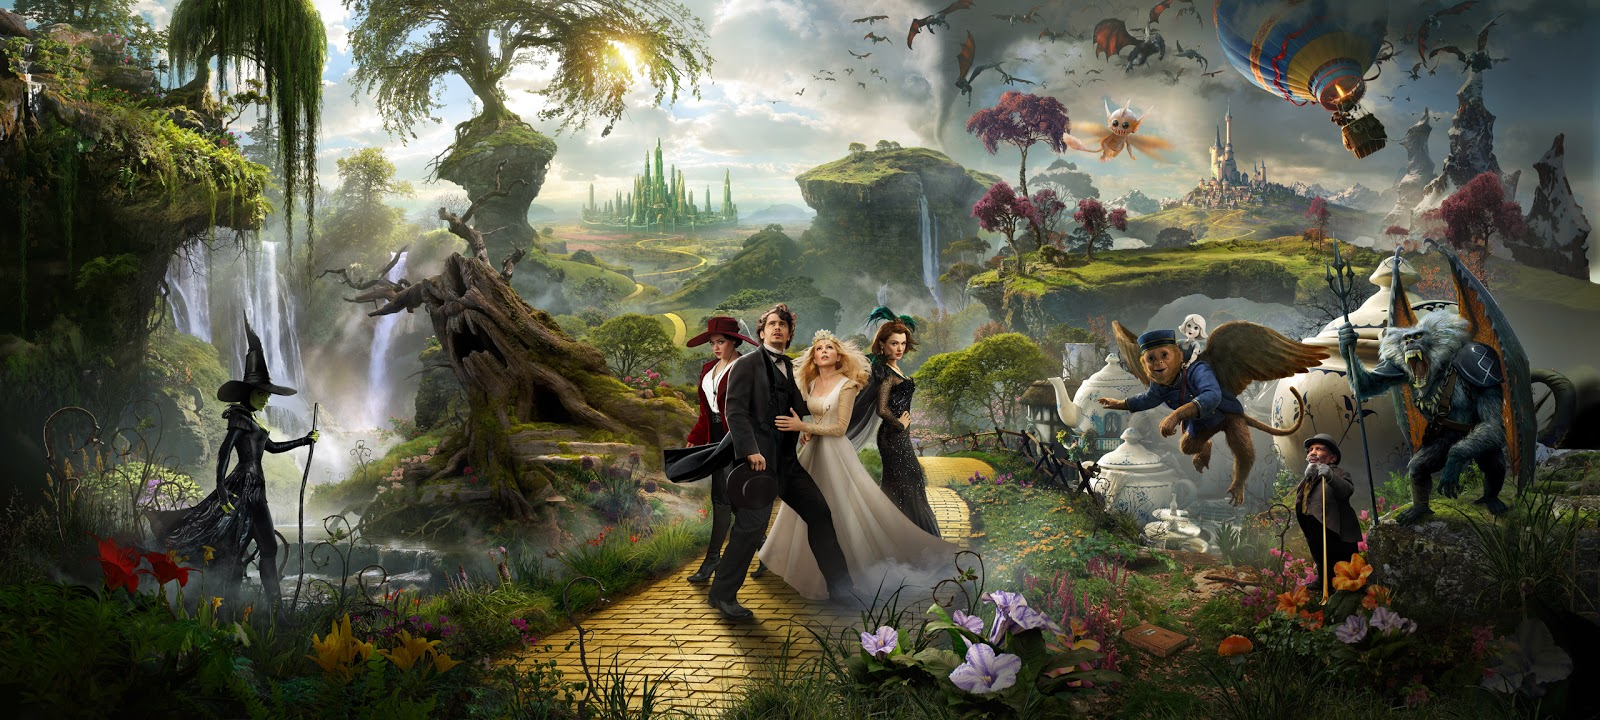 49 wizard of oz desktop wallpaper on wallpapersafari - The wizard of oz hd ...